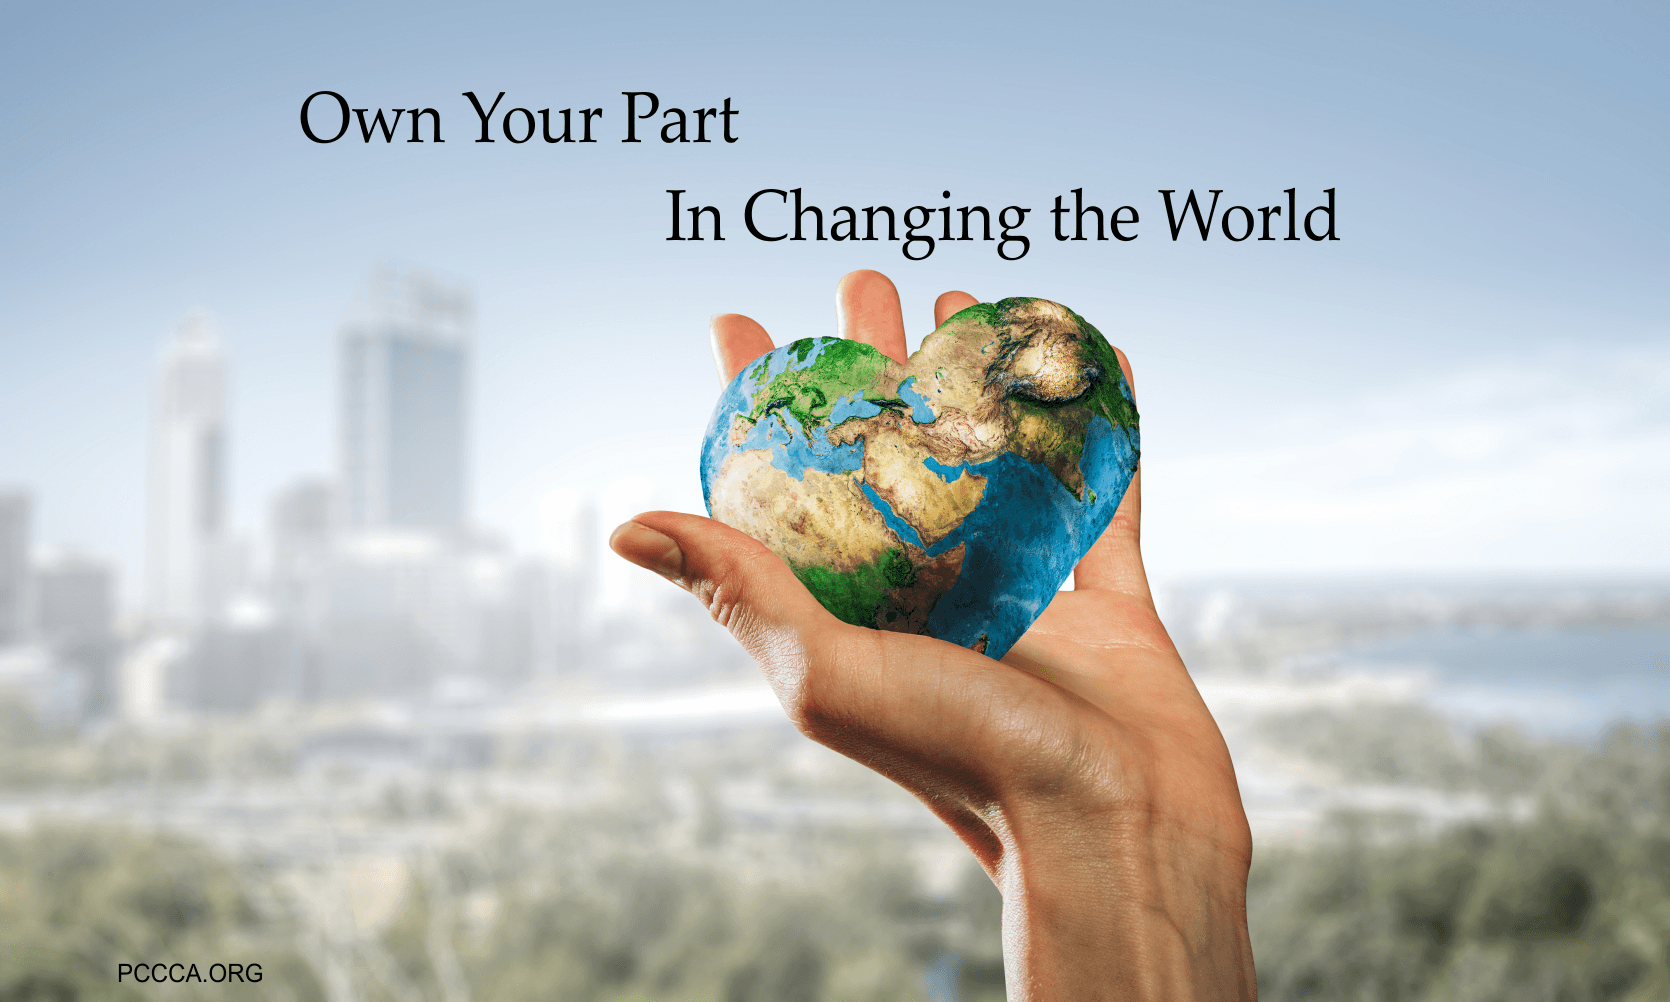 Own Your Part In Changing The World at http://pccca.org